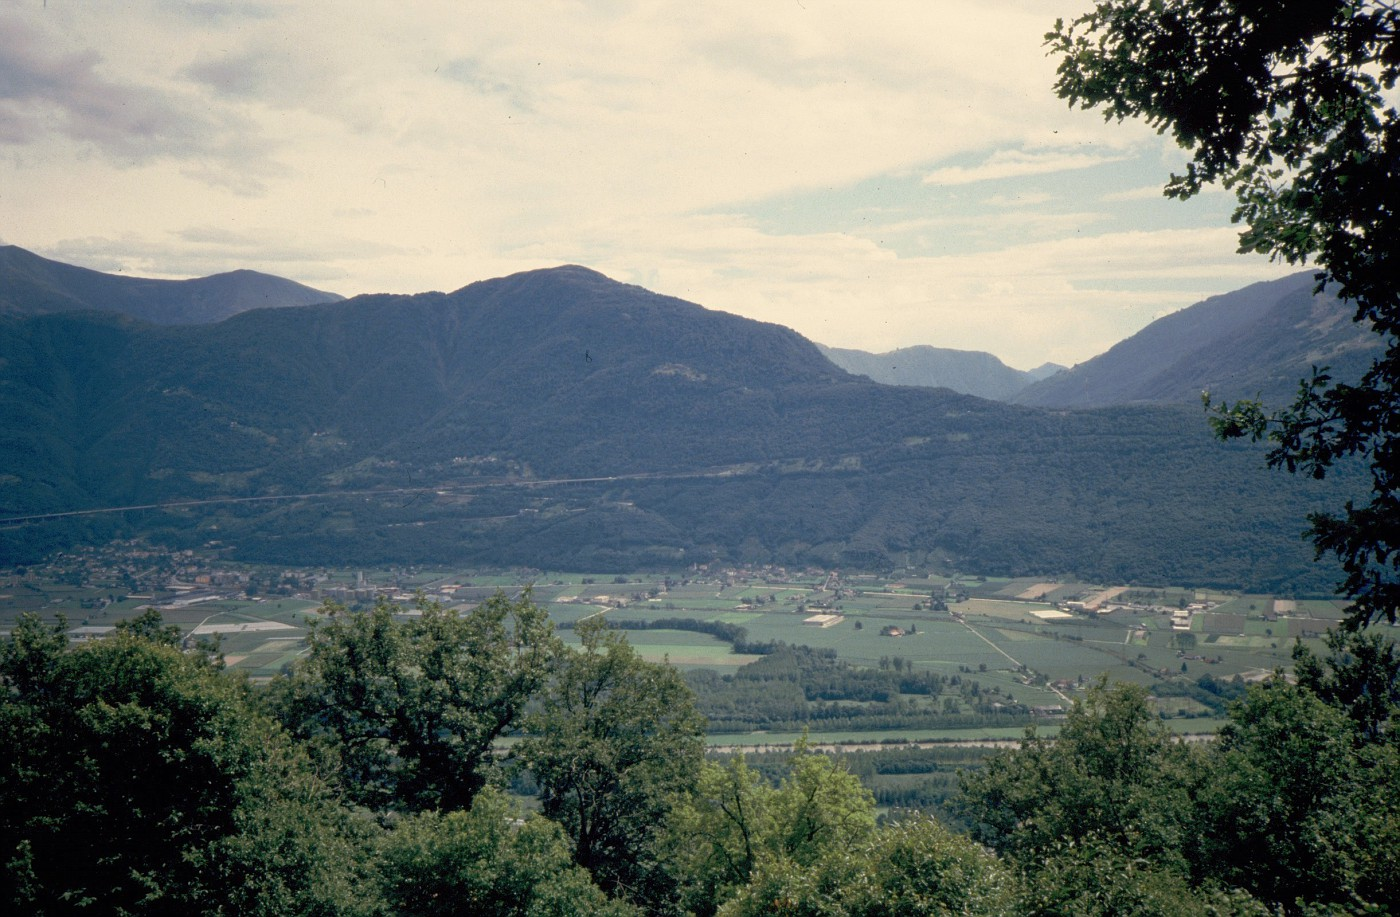 1986-08 1785 View from Corunia